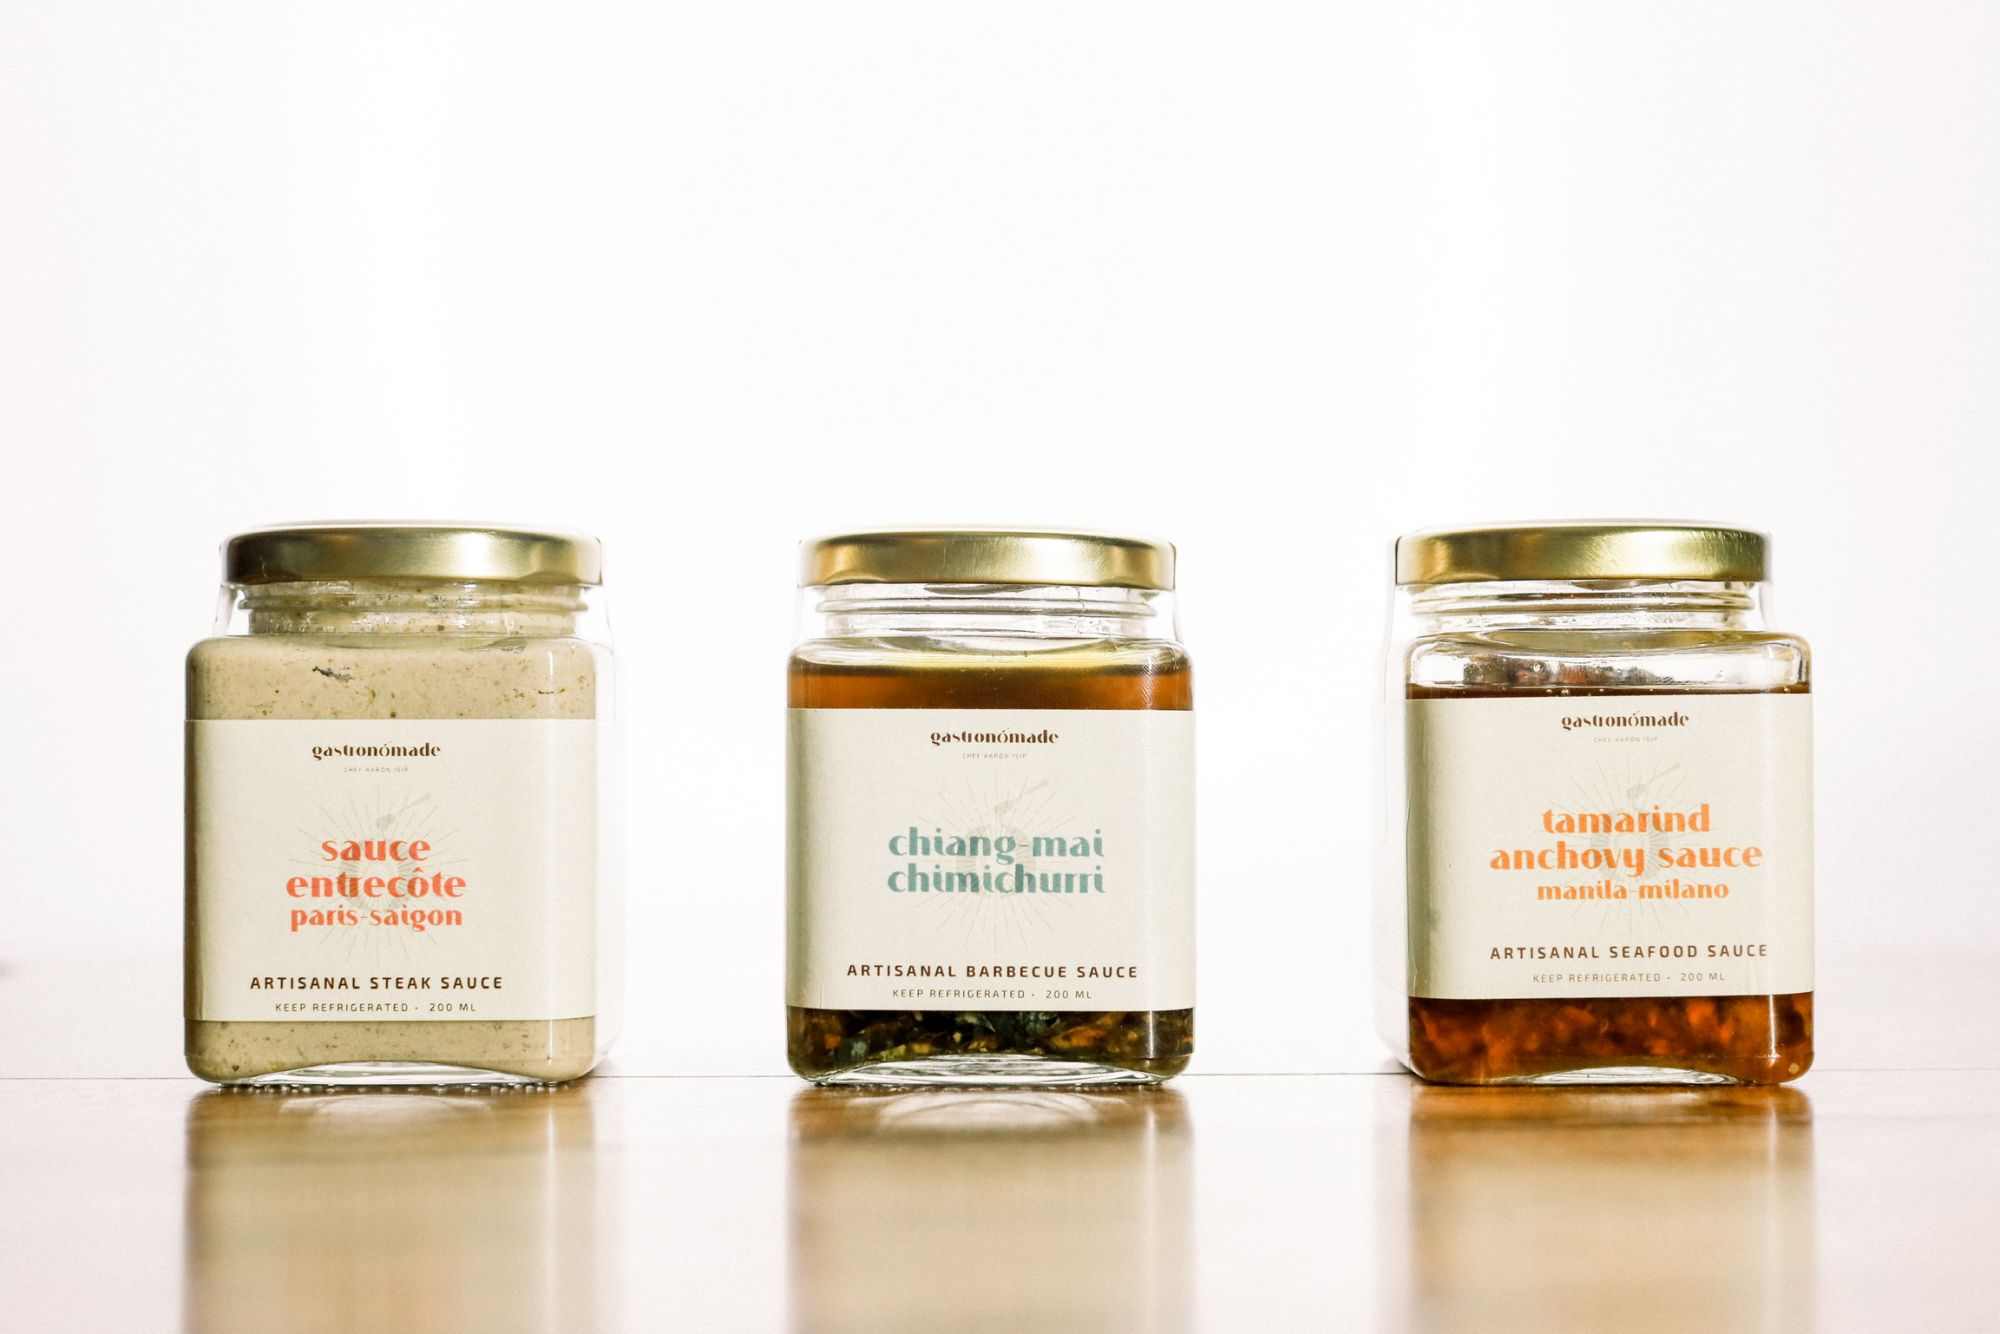 Gastronômade Manila By Chef Aaron Isip: Sauces And DIY Kits You Must Try